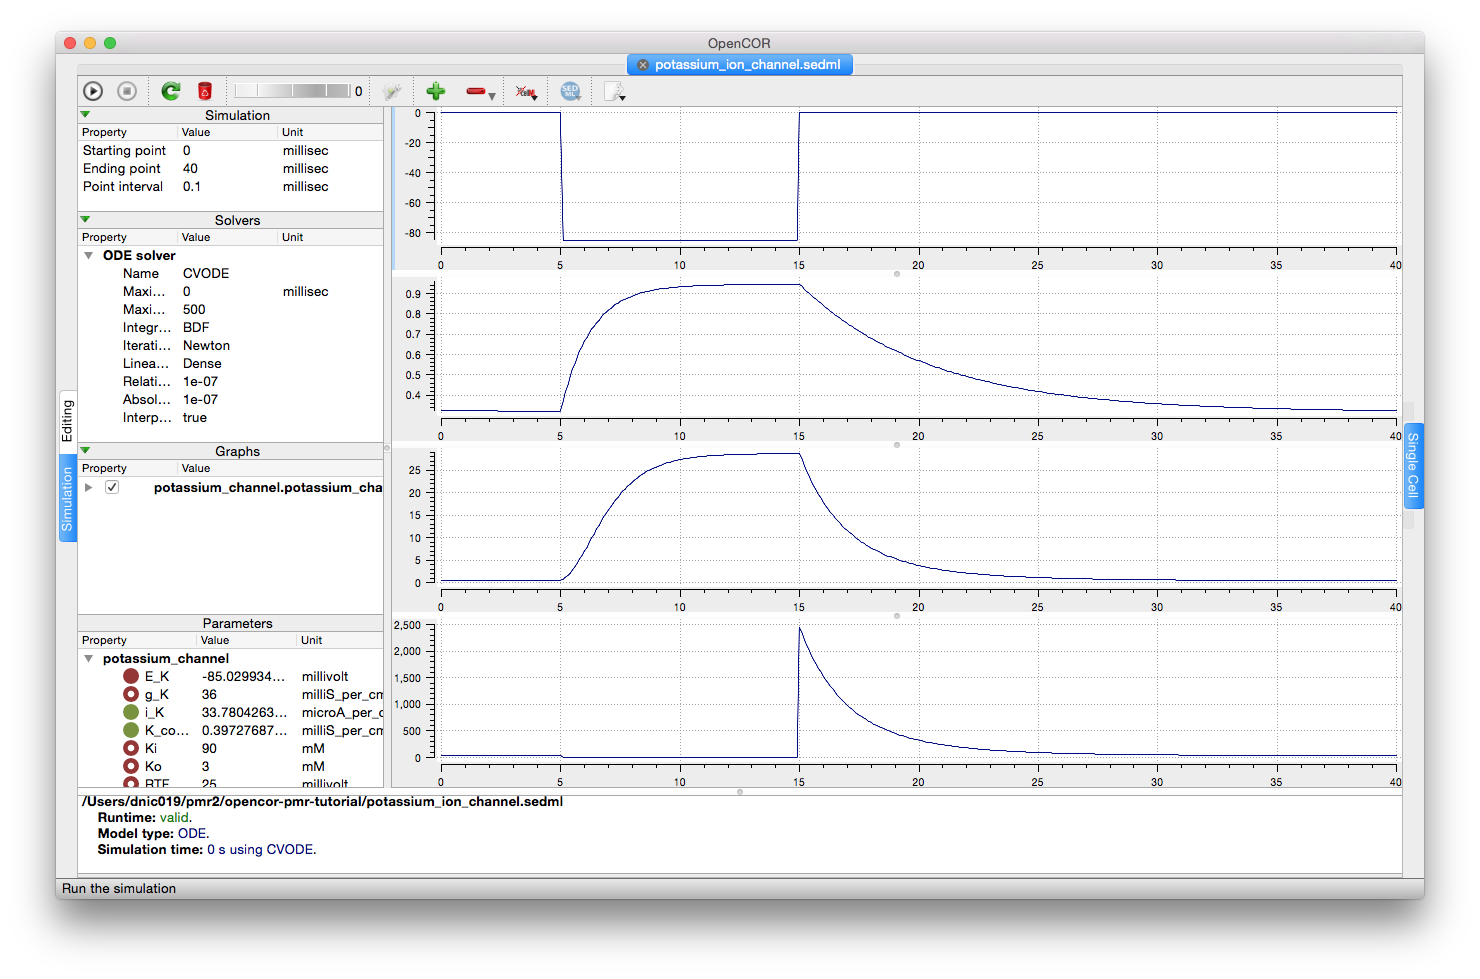 Screenshot illustrating the results of executing this potassium simulation experiment in OpenCOR.